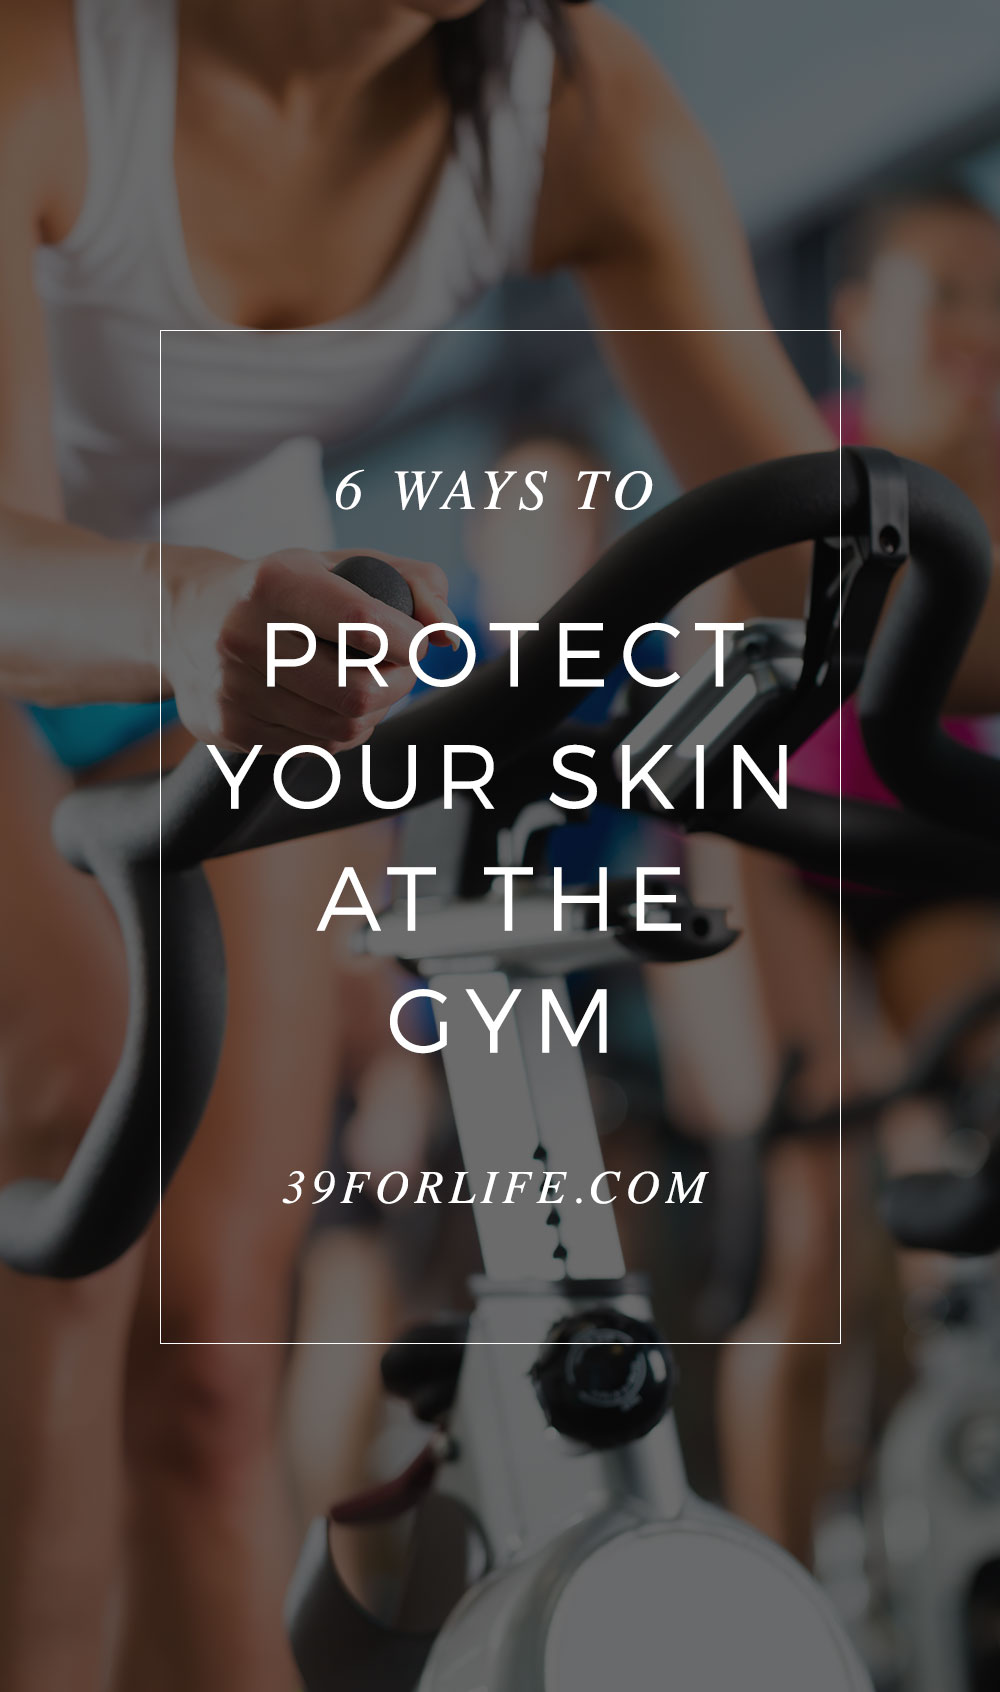 Wiping down your equipment isn't enough to prevent skin conditions that linger on the machines. Here's how to protect your skin before and after a workout.